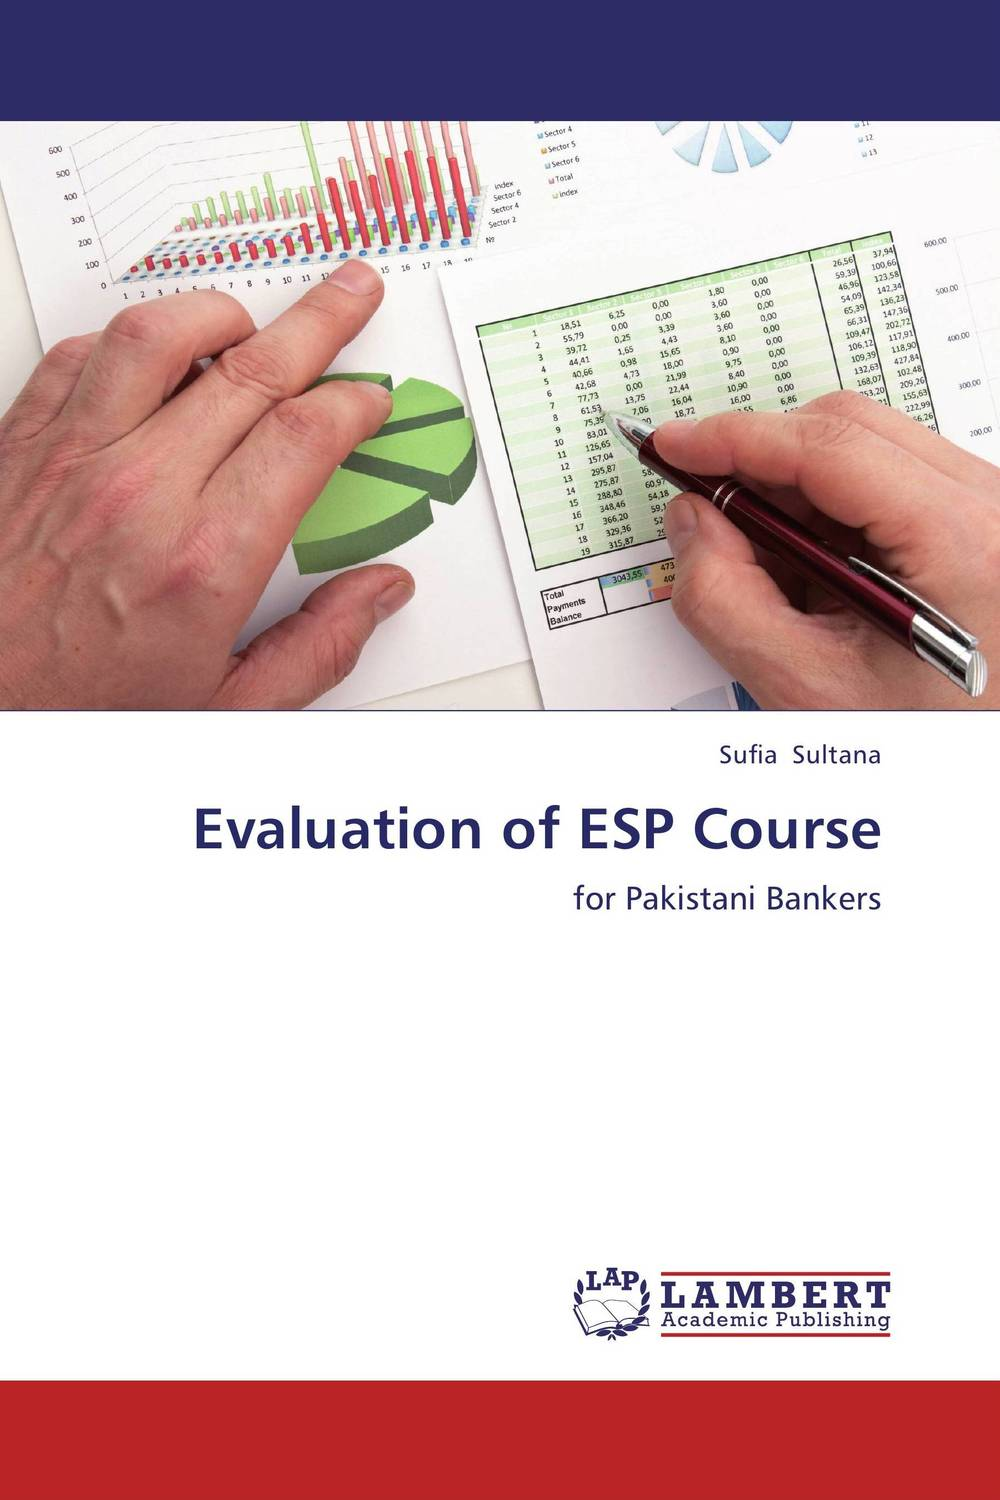 Evaluation of ESP Course the role of evaluation as a mechanism for advancing principal practice